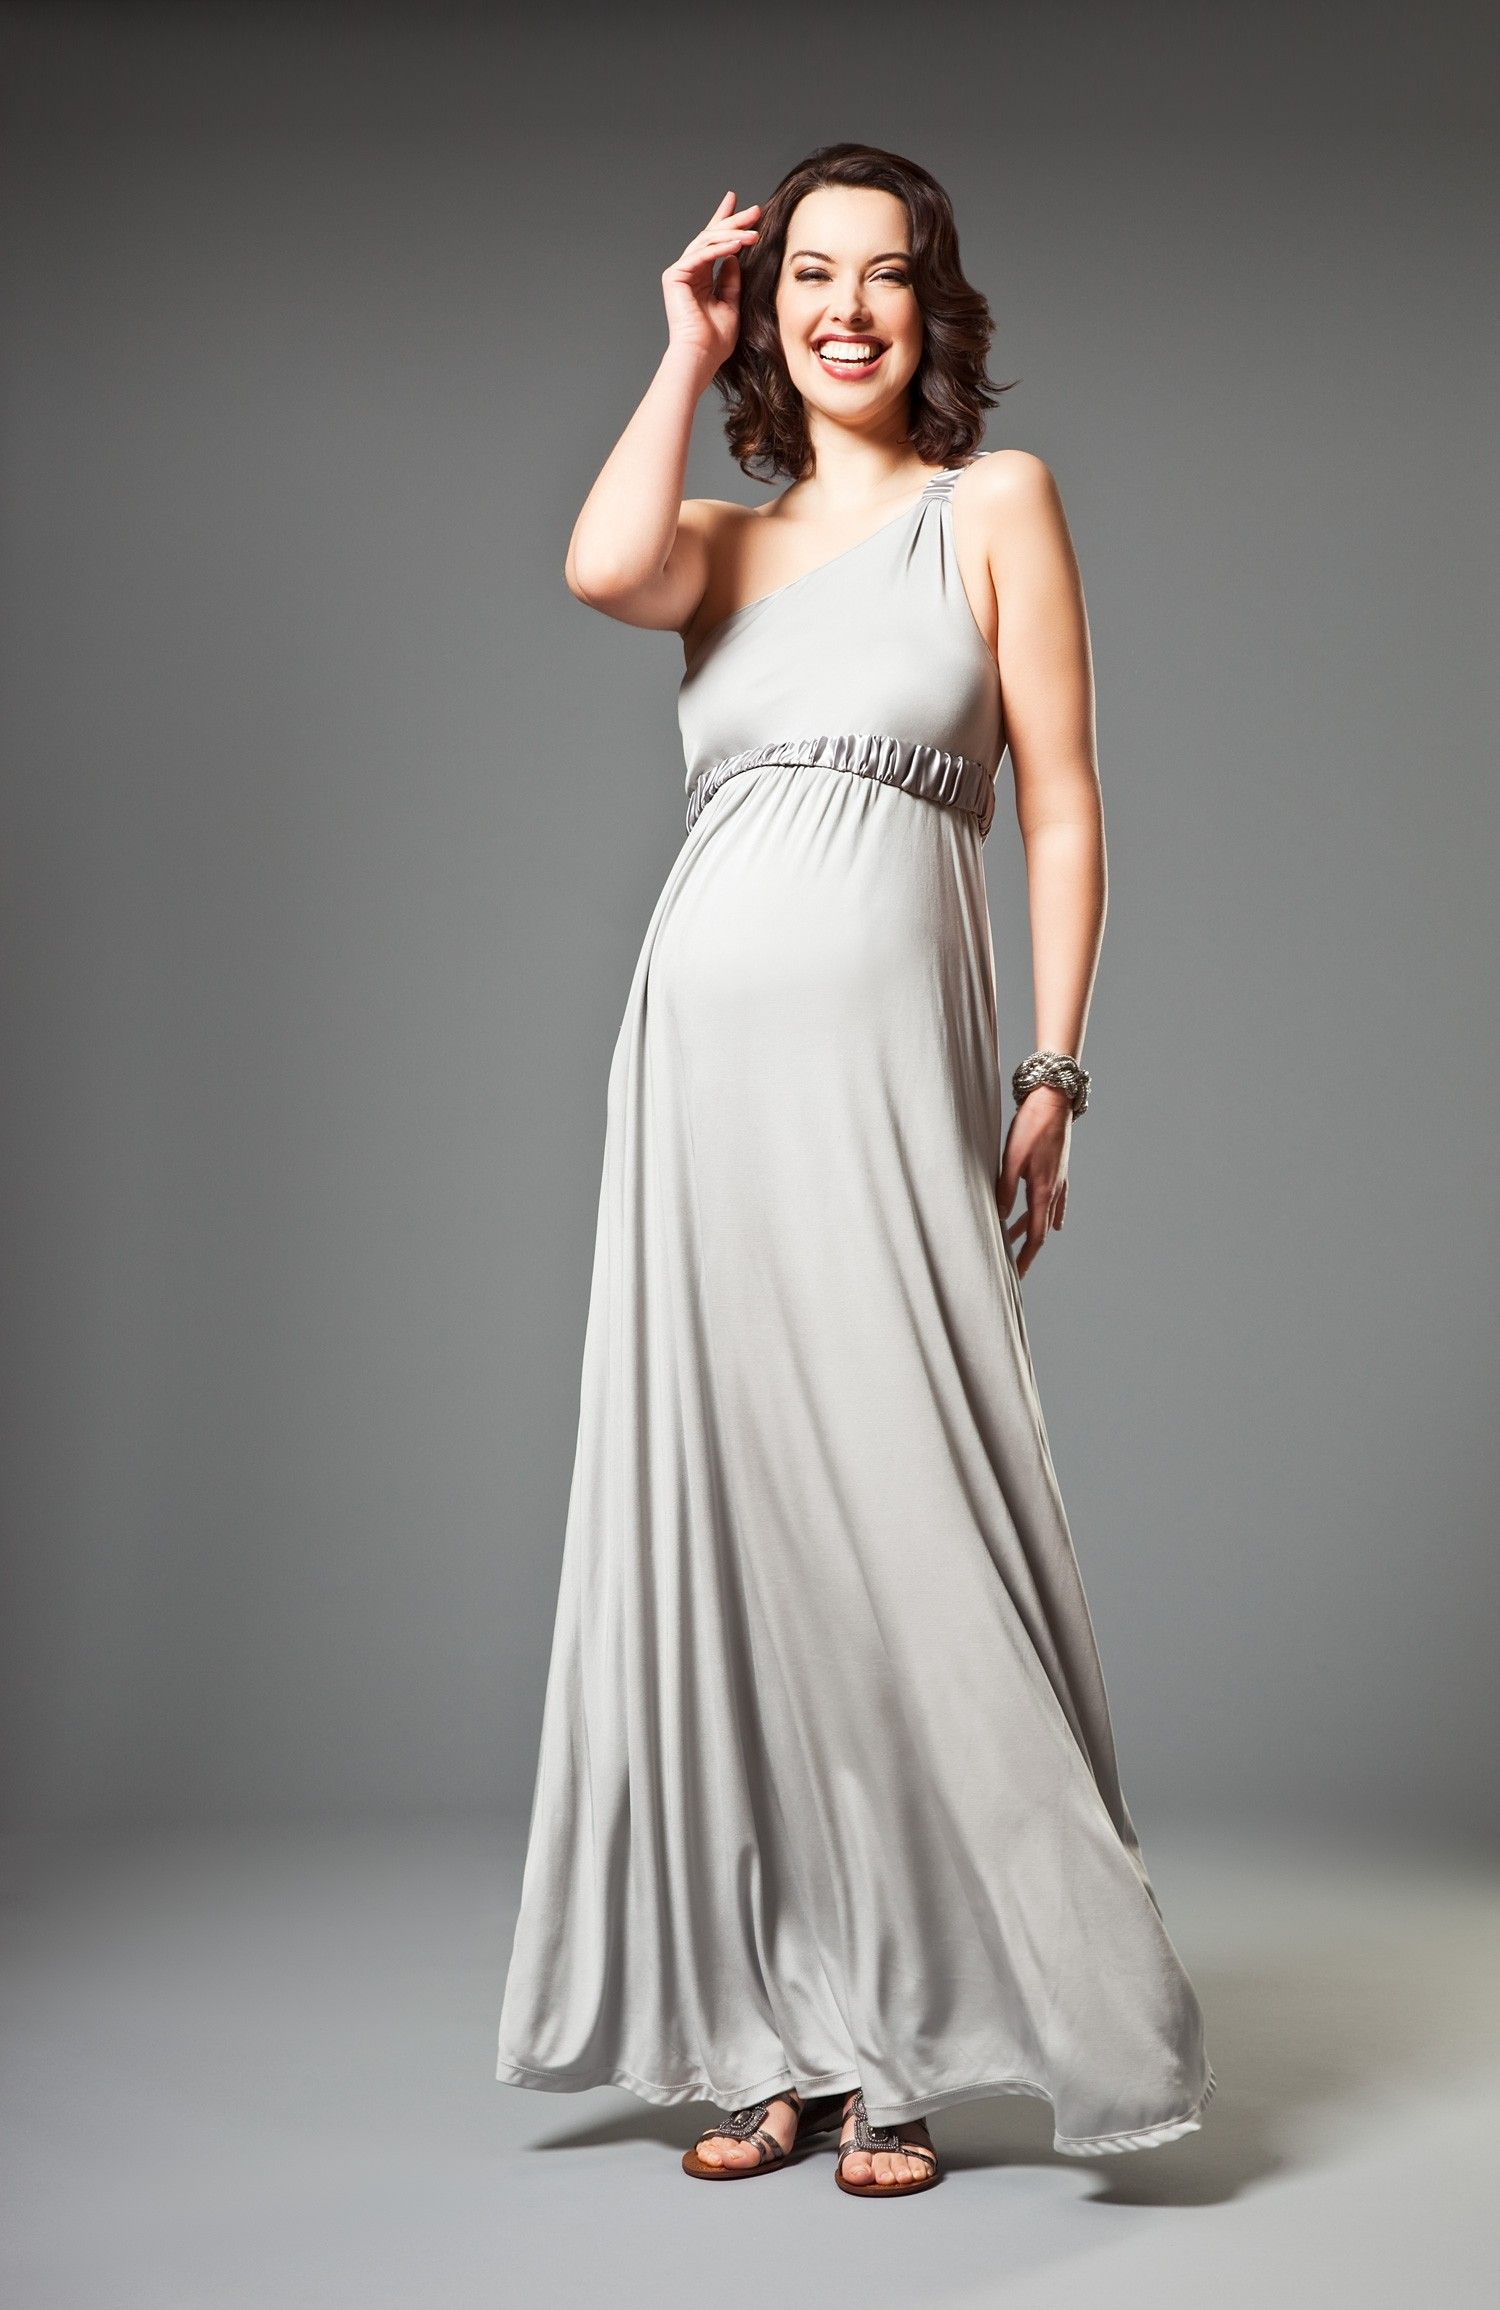 Spectacular Cute Maternity Dresses For The Greatest Appearance Bridal Shower